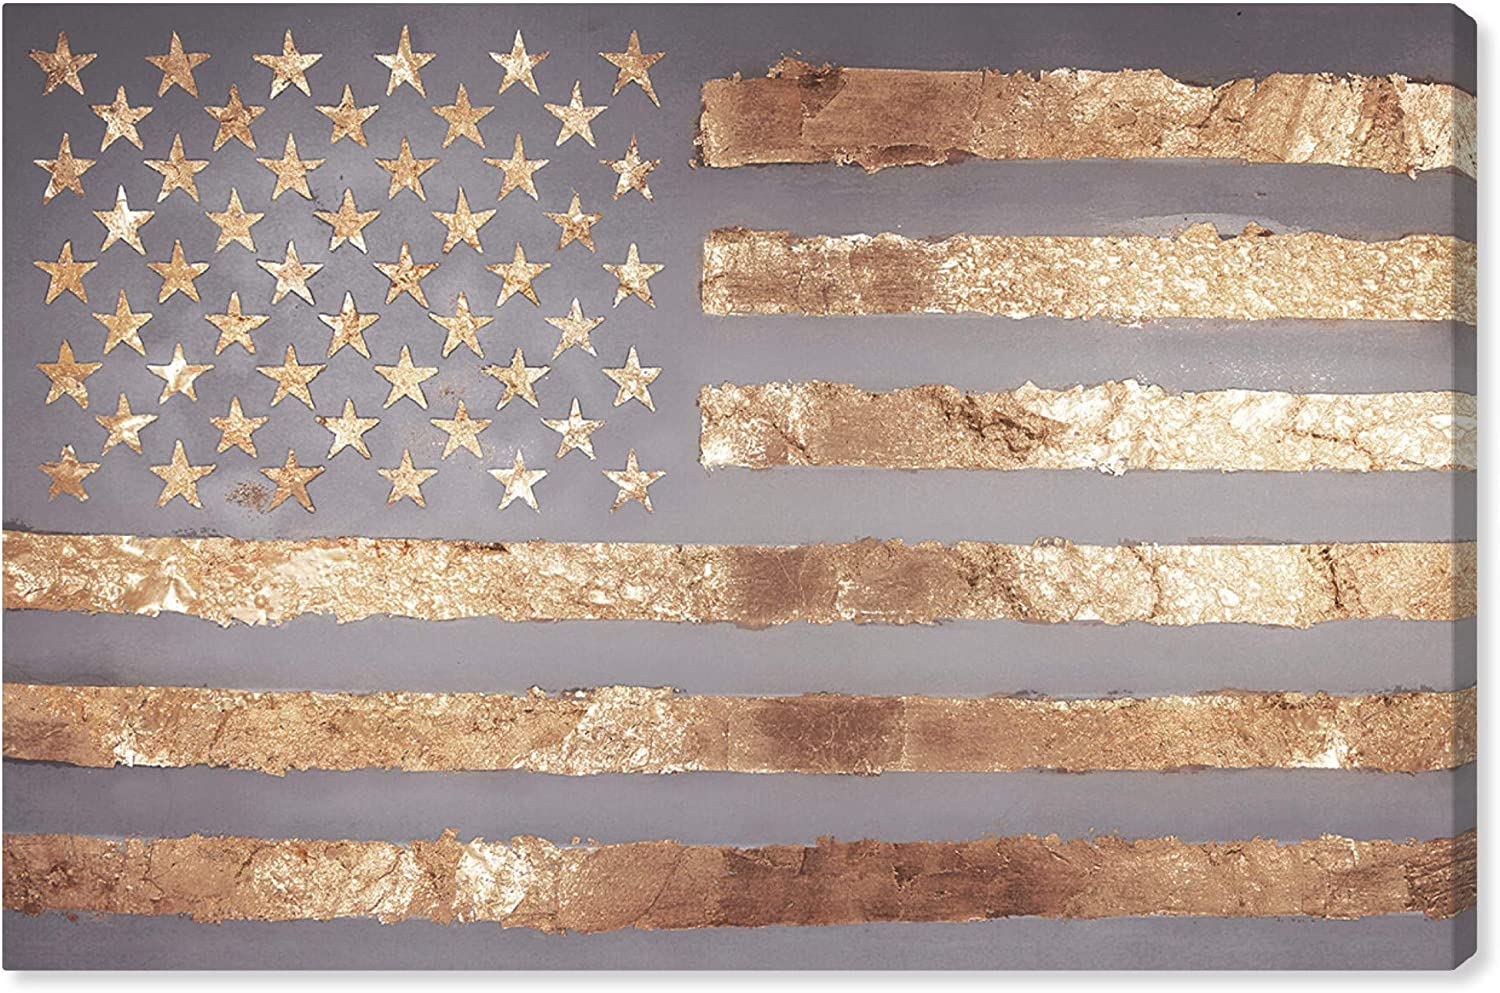 The Oliver Gal Artist Co. Maps and Flags Wall Art Canvas Prints 'Rocky Freedom' Home Décor, 30